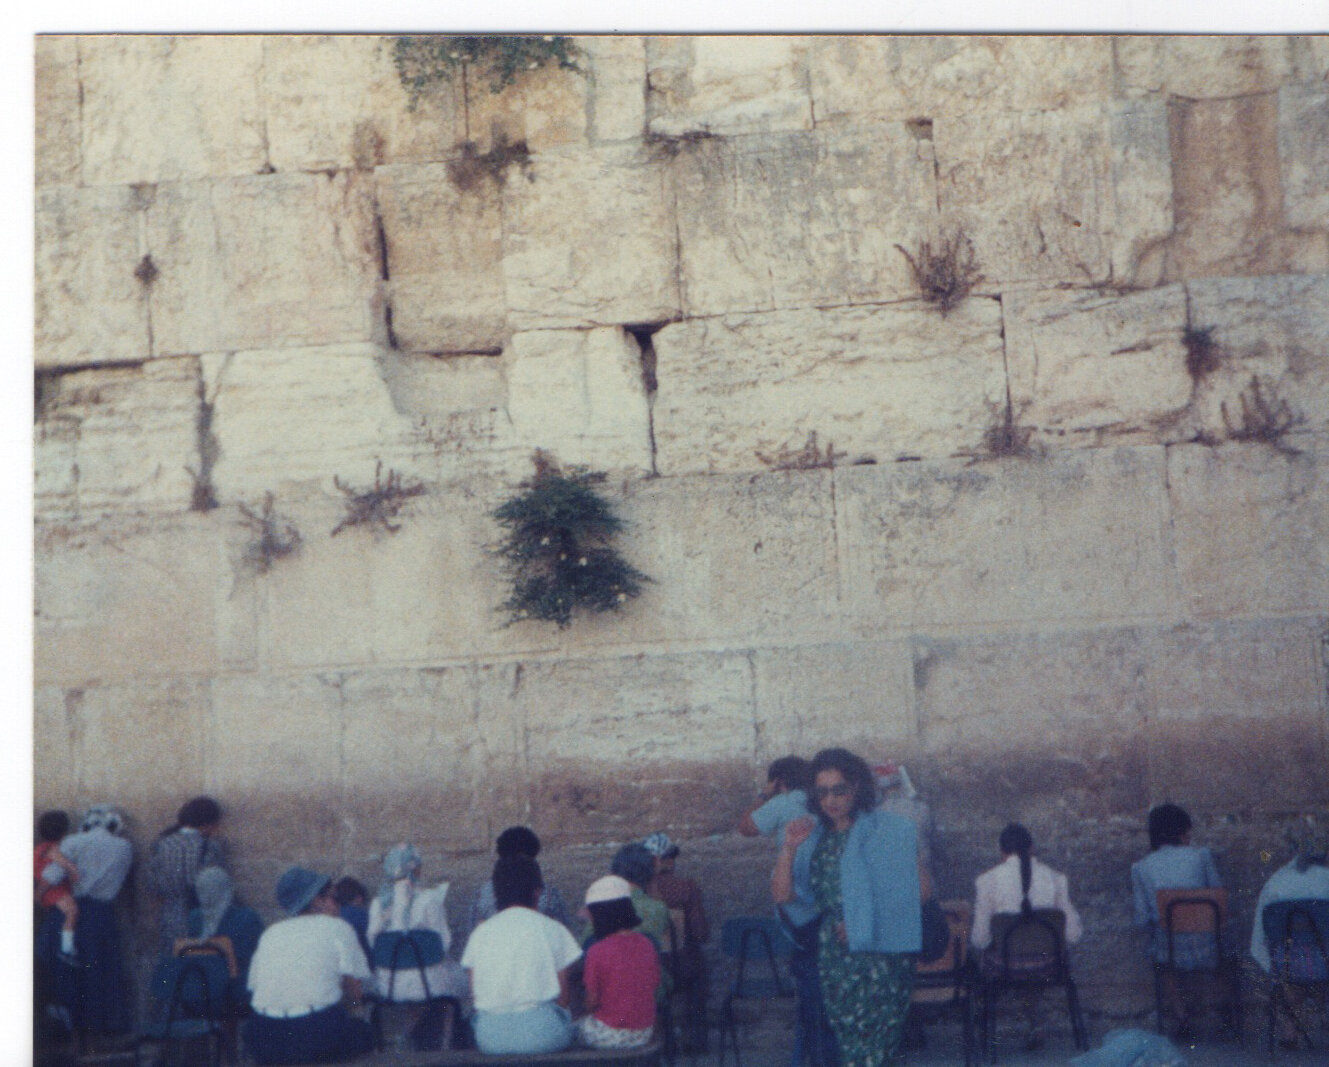 Wailing Wall from my trip in 80's. Had I realised back then that it would be such an inspiration for my work, I would have taken a better picture. A good excuse to return though.